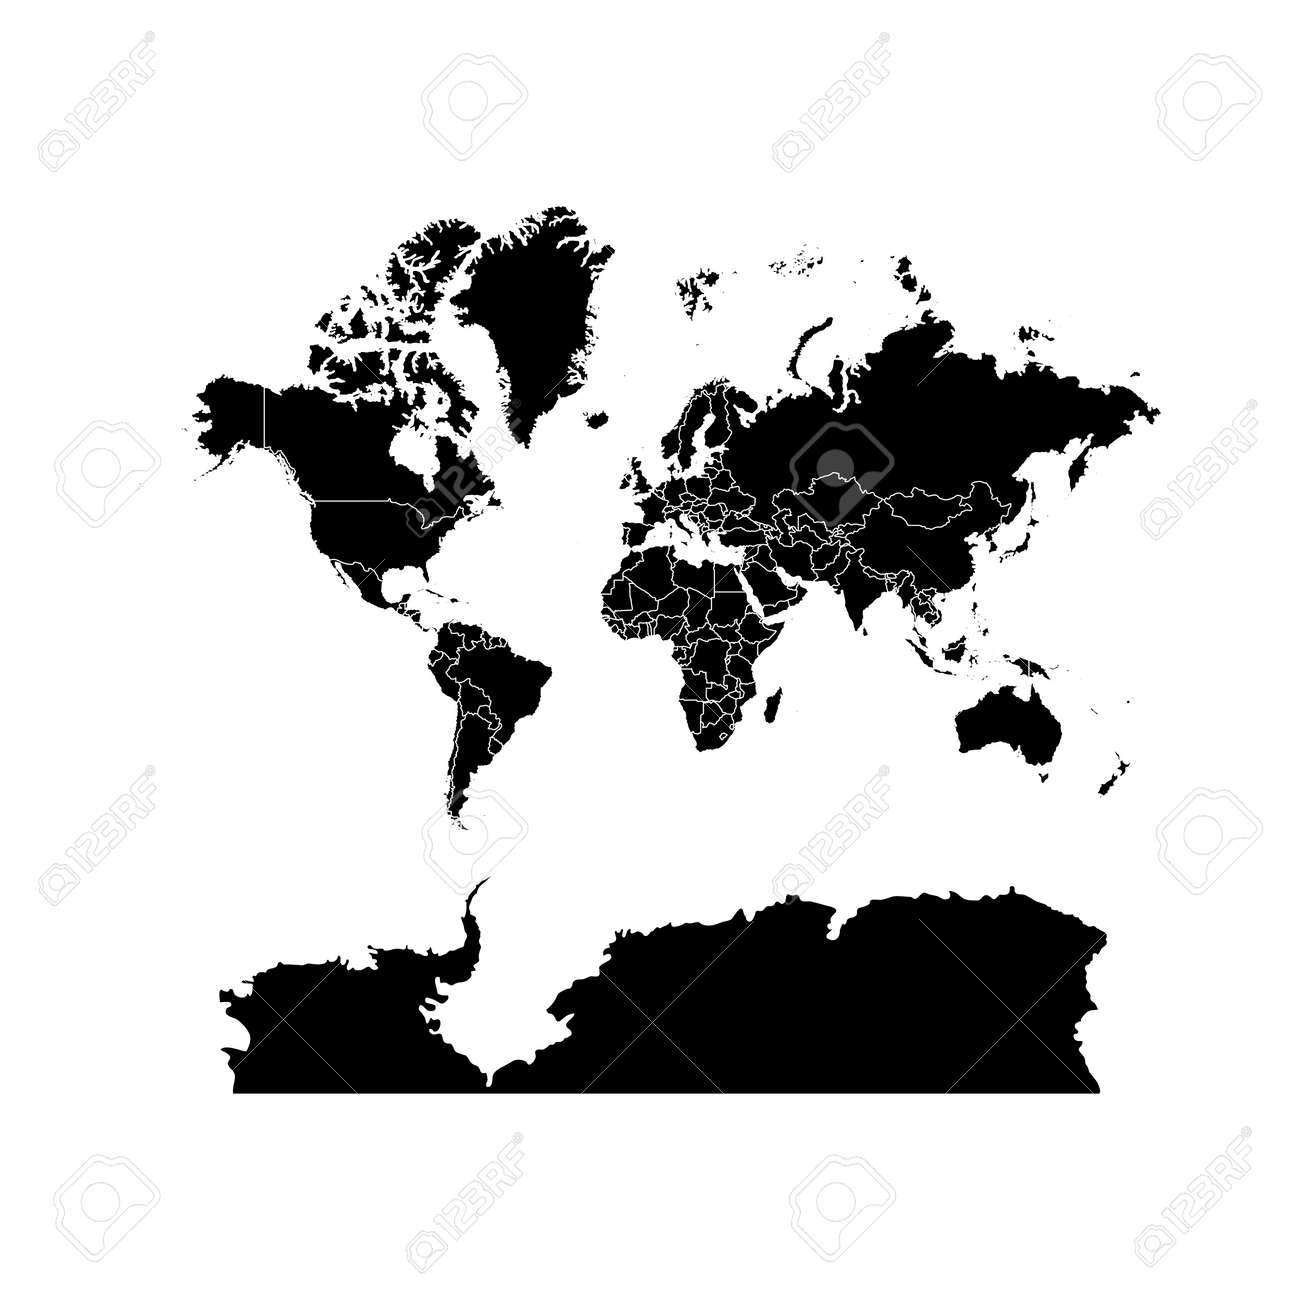 Flat World Map Vector.Black World Map Political Isolated On White Background Worldmap